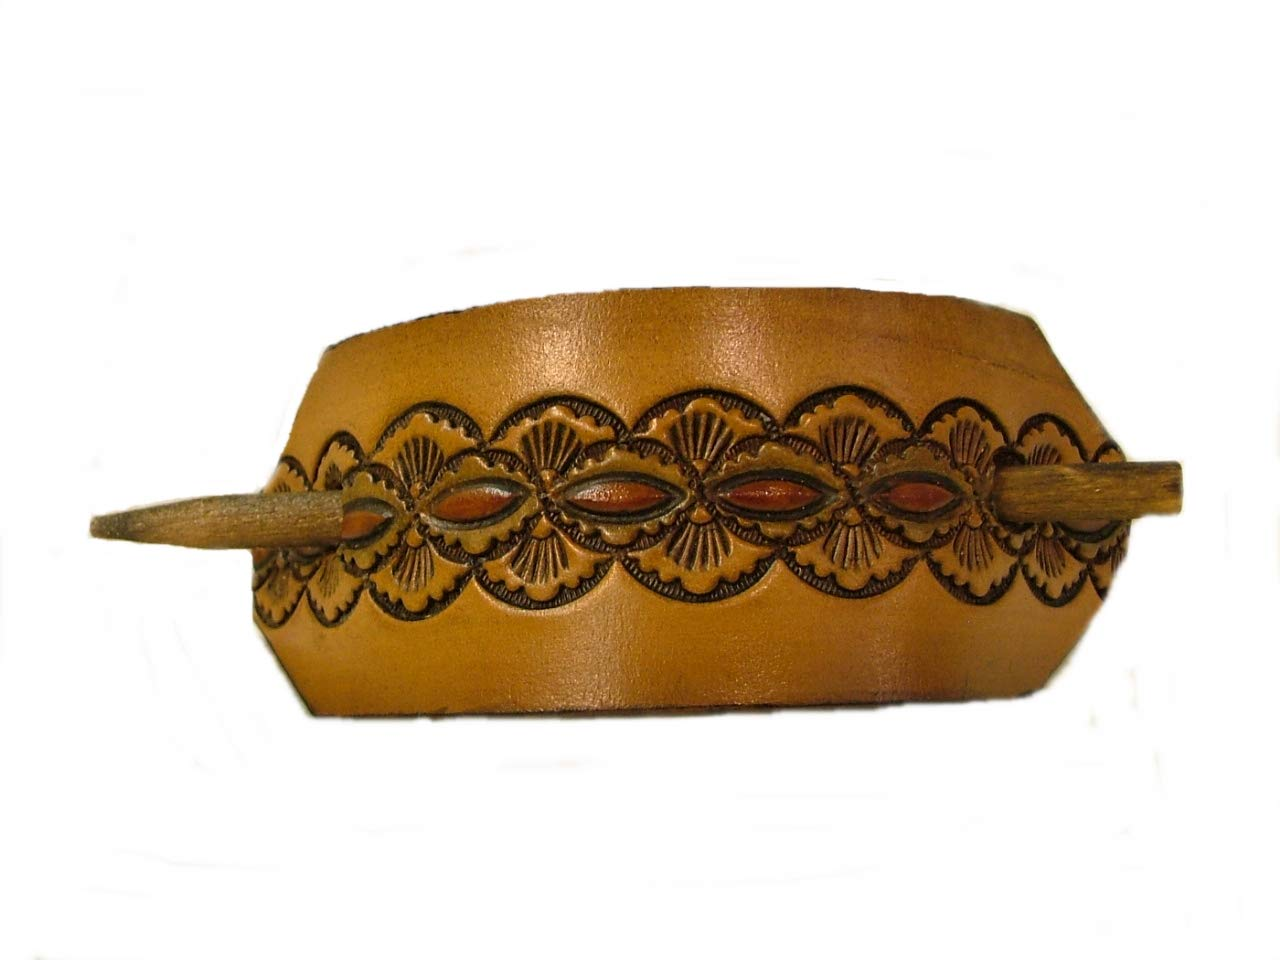 Large Leather Hair Max 86% OFF Barrette half with Stick… Unique Corn Clipped